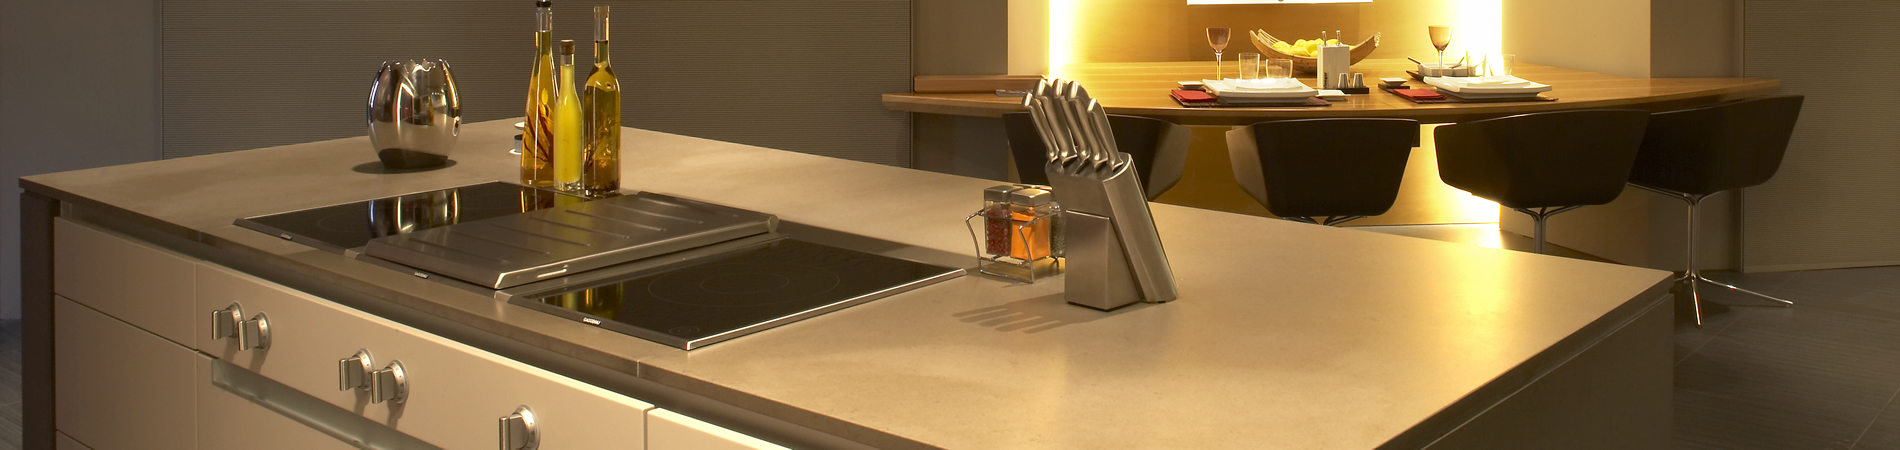 Silestone Arbeitsplatte Preise Kitchen Worktops Prices - The Best Kitchen Worktops Prices